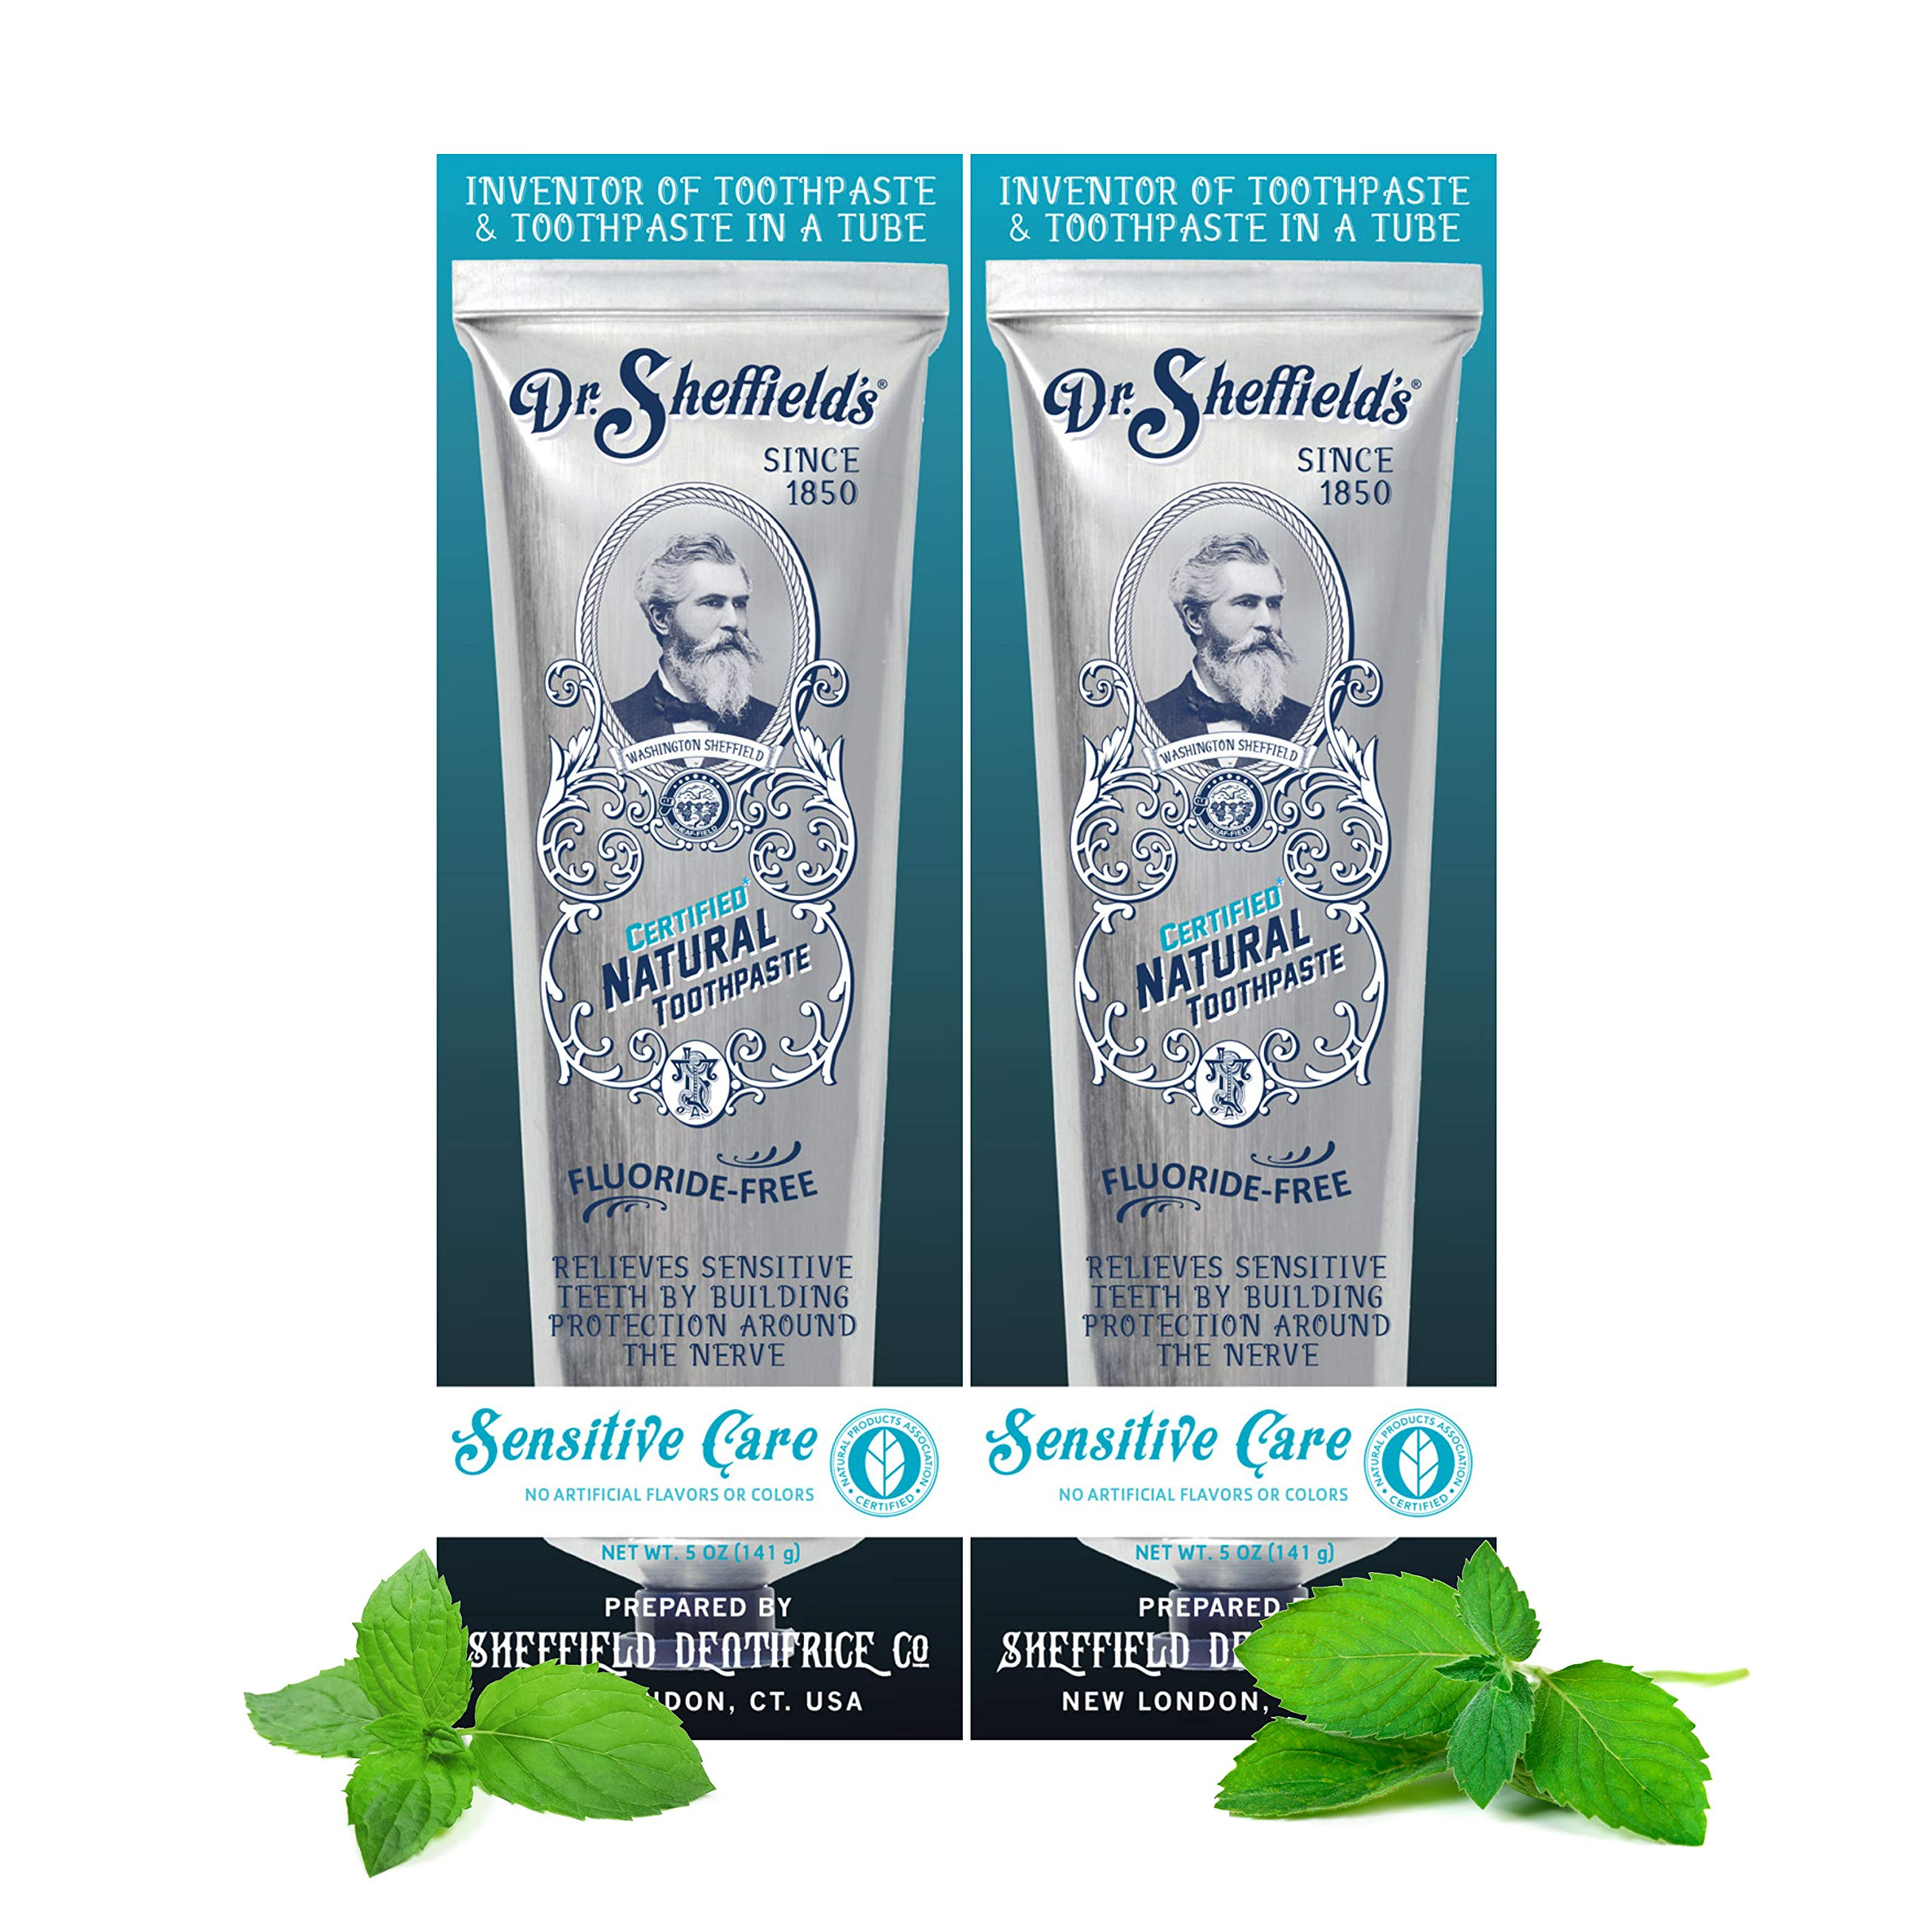 Dr. Sheffield's Certified Natural Toothpaste (Sensitive) - Great Tasting, Fluoride Free Toothpaste/Freshen Your Breath, Whiten Your Teeth, Reduce Plaque (2-Pack)